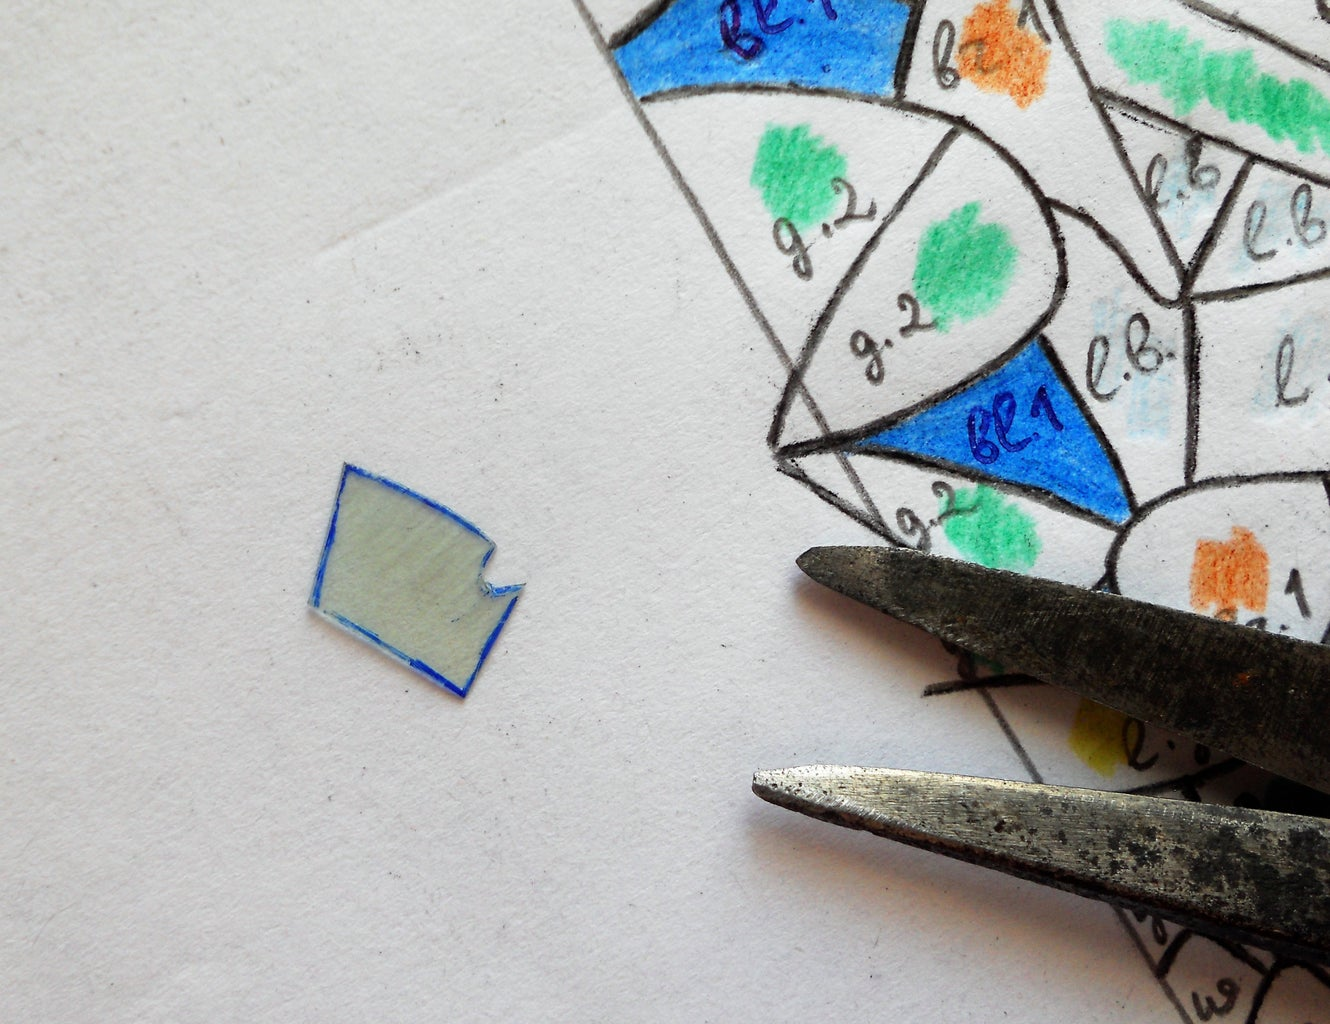 Preparation of the Pieces of Mosaic